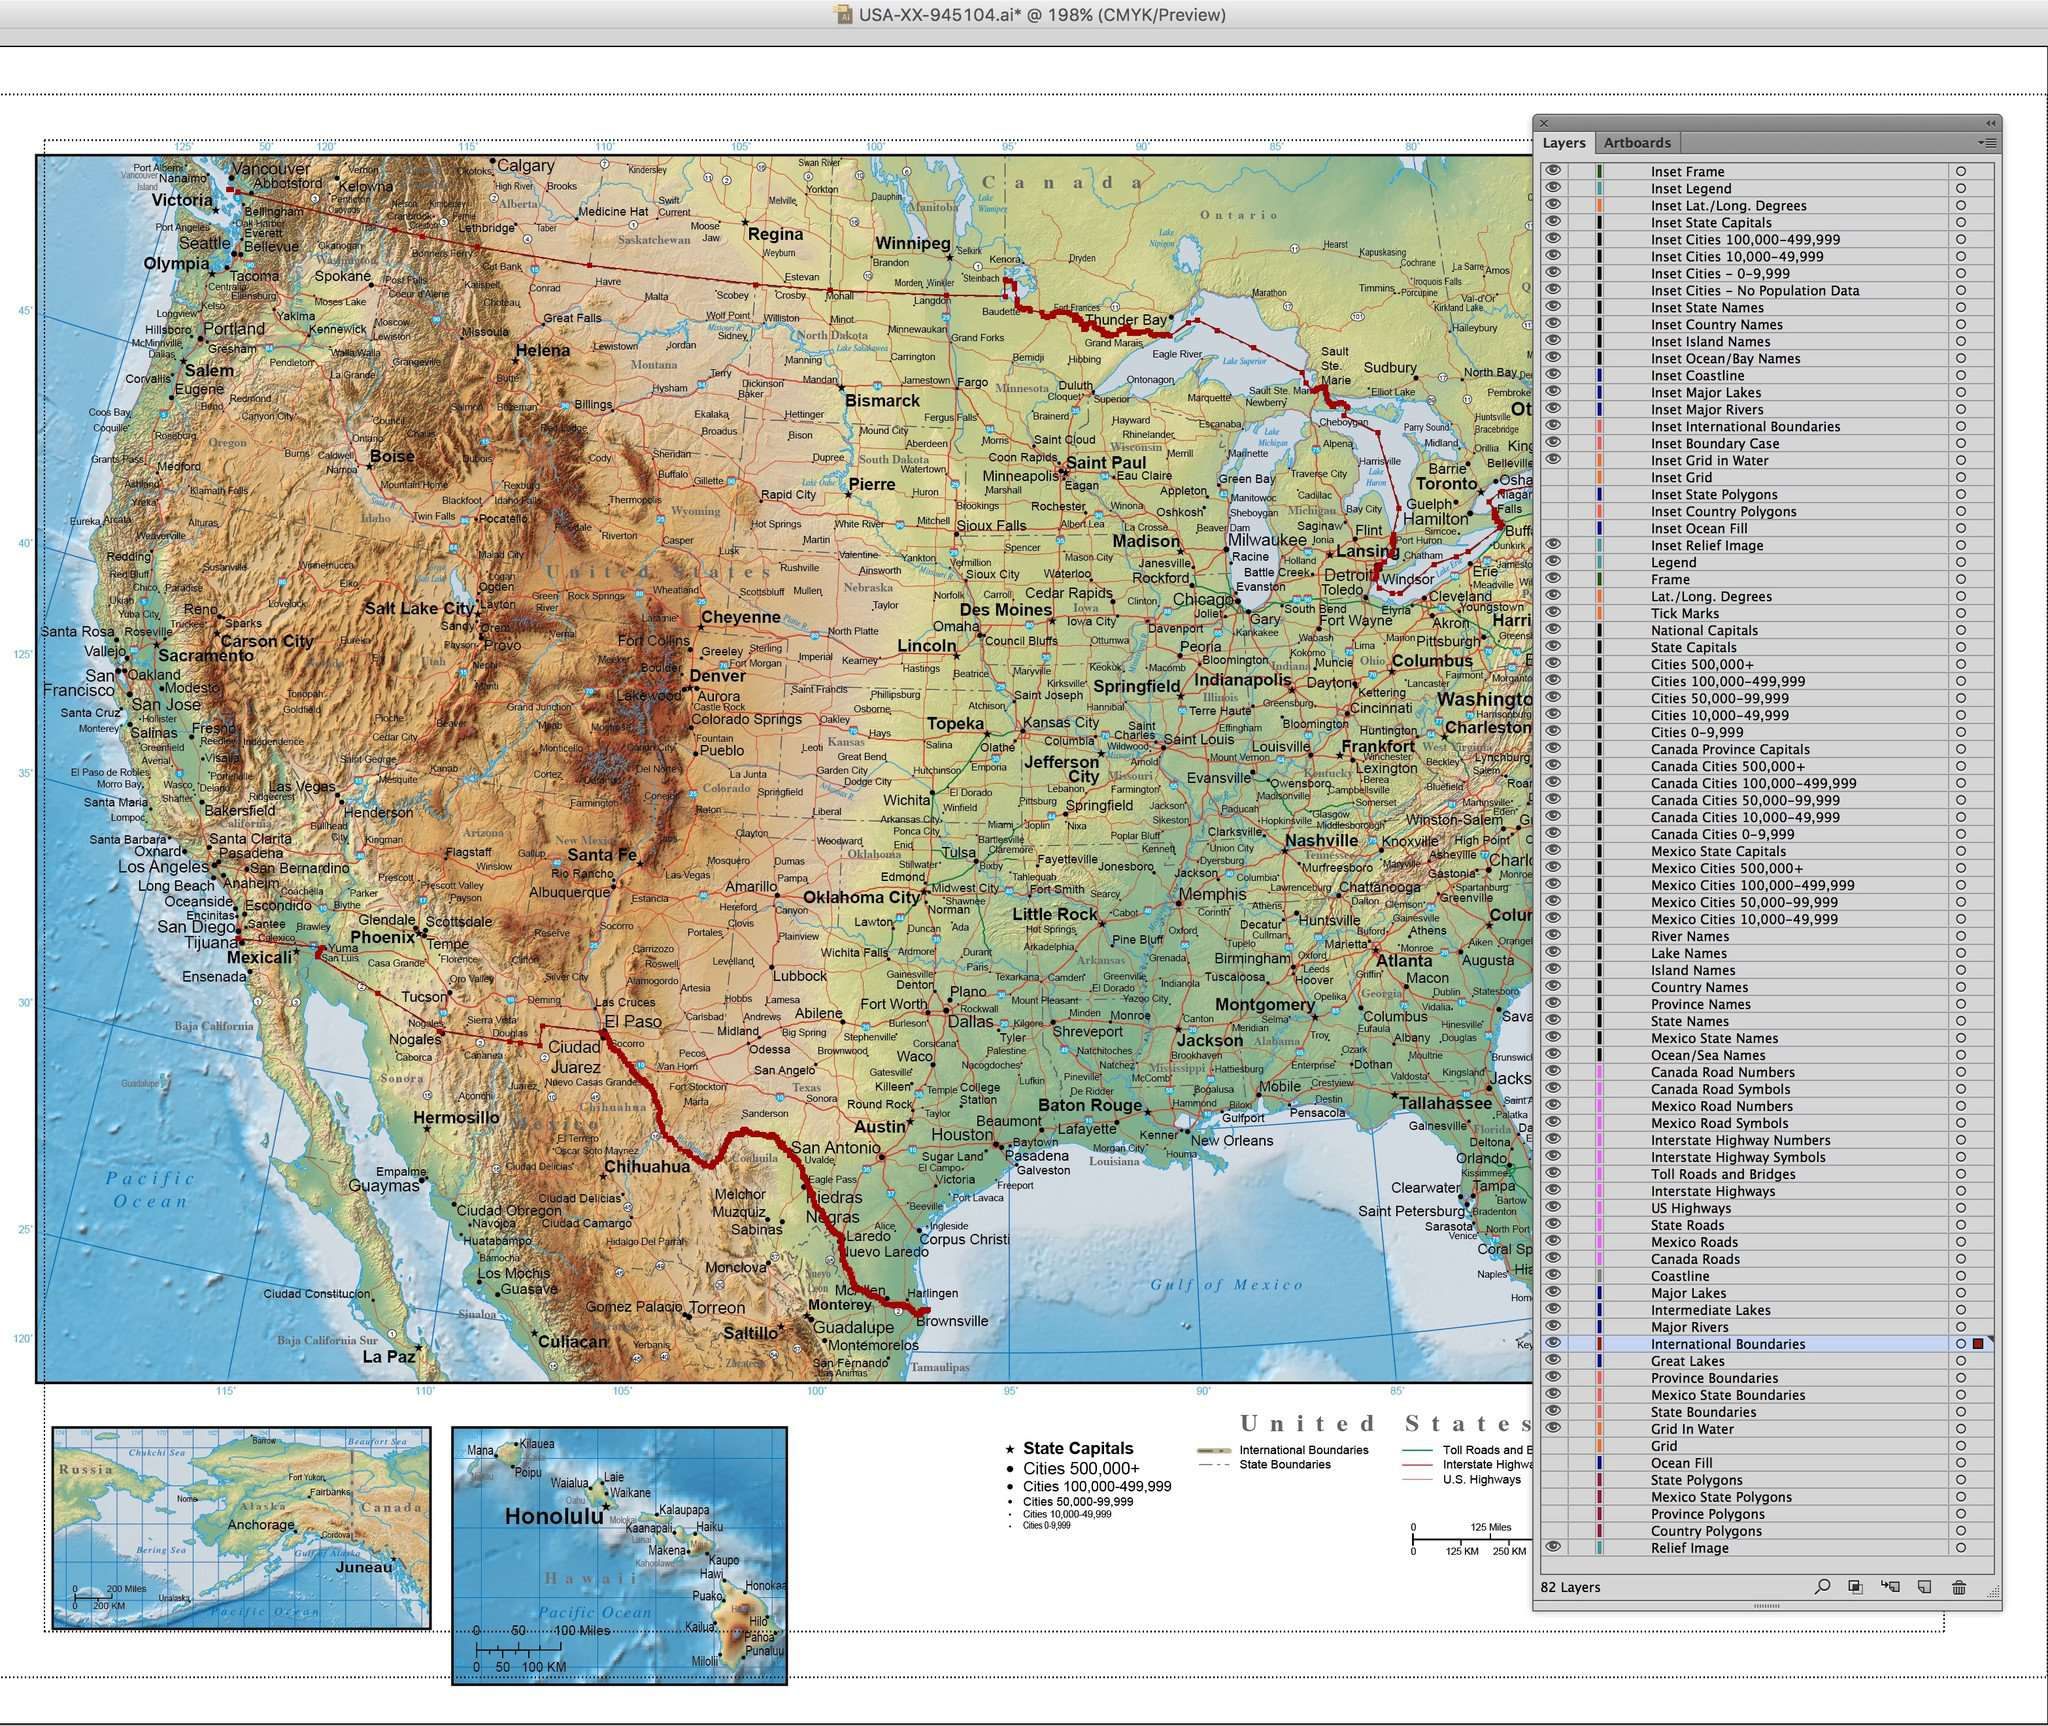 Terrain Map Of Usa Digital United States Terrain map in Adobe Illustrator vector format